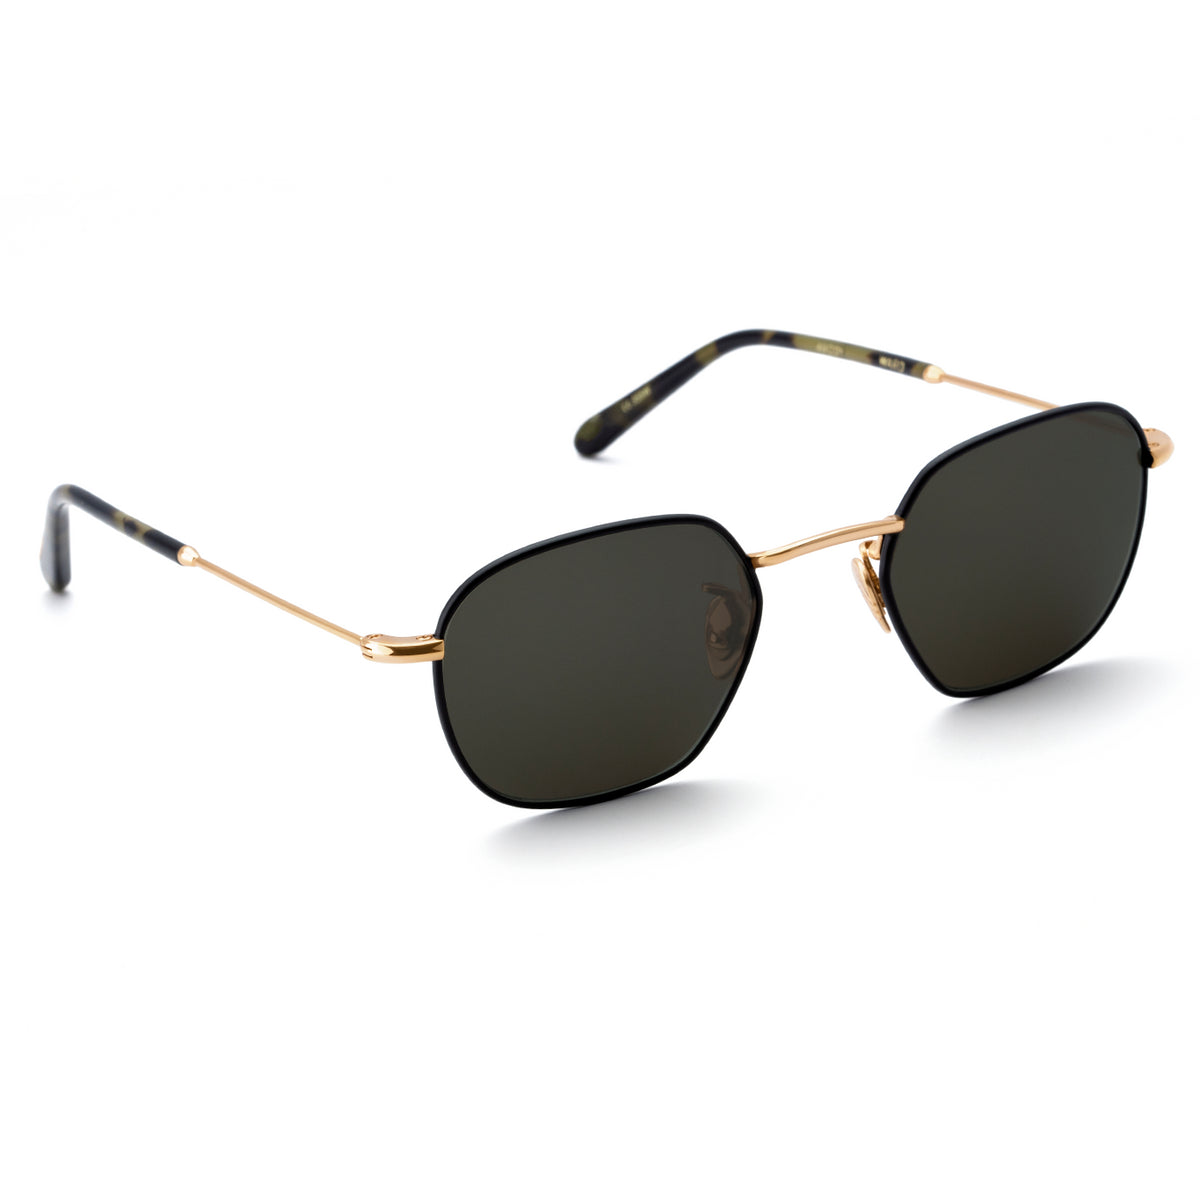 WARD | Tortuga + Matte Black to 24K Titanium handcrafted acetate sunglasses